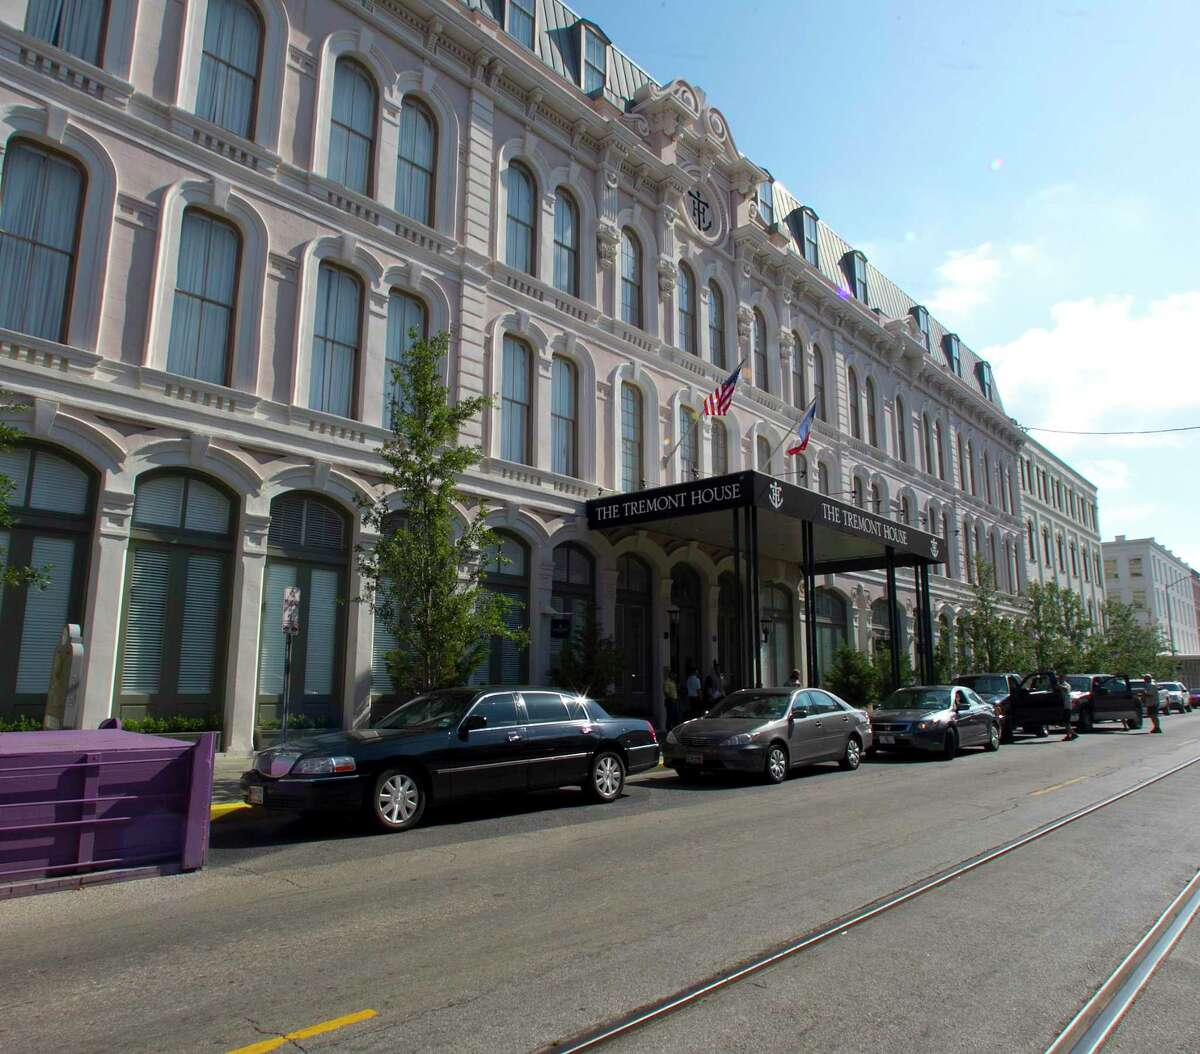 The Tremont House hotel Sunday, May 20, 2012, in Galveston. ( James Nielsen / Chronicle )